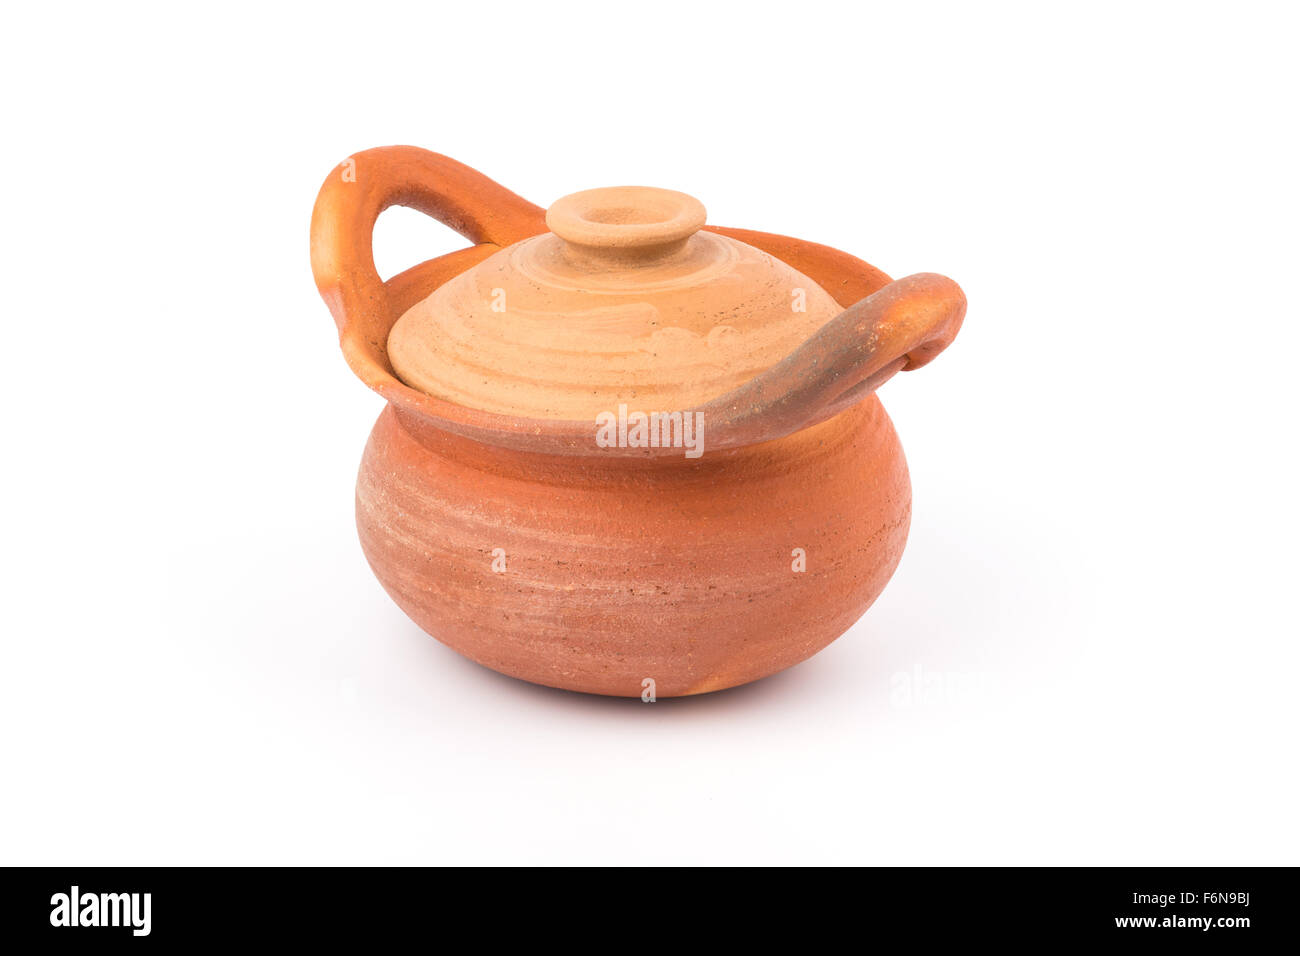 pot clay on white background - Stock Image